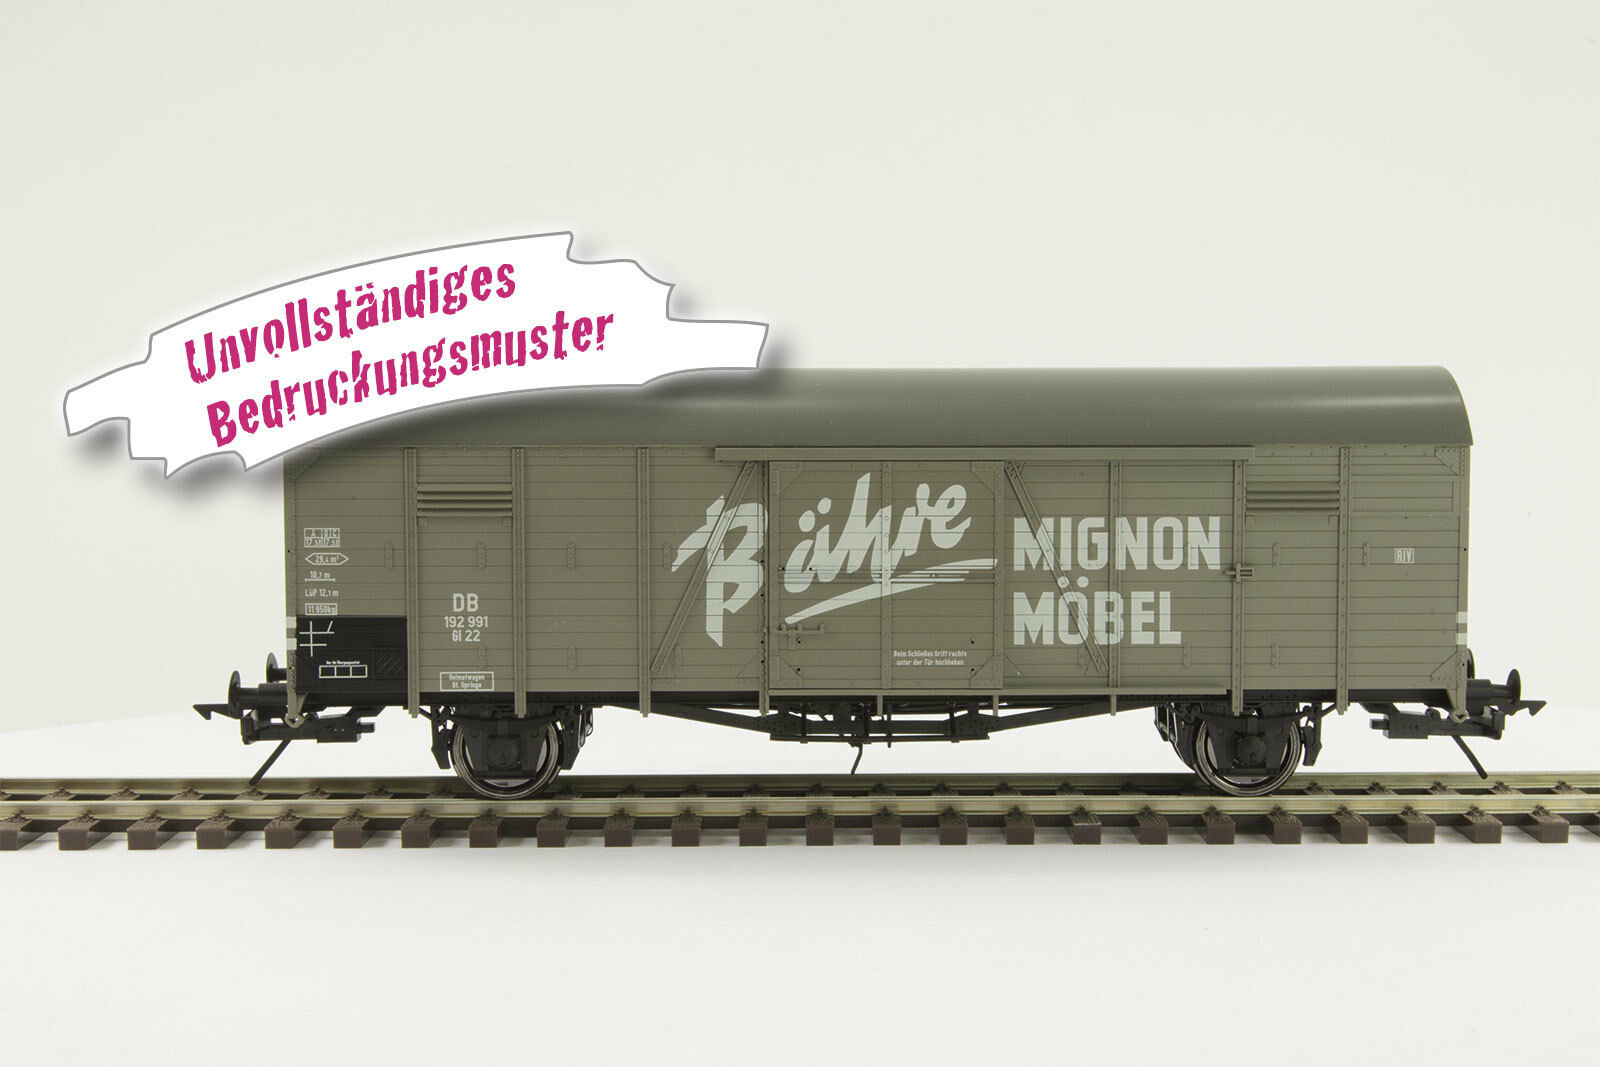 Lenz o Gauge 42212-06 Covered Goods Wagon Gl22 Dresden,   Bähre Mignon